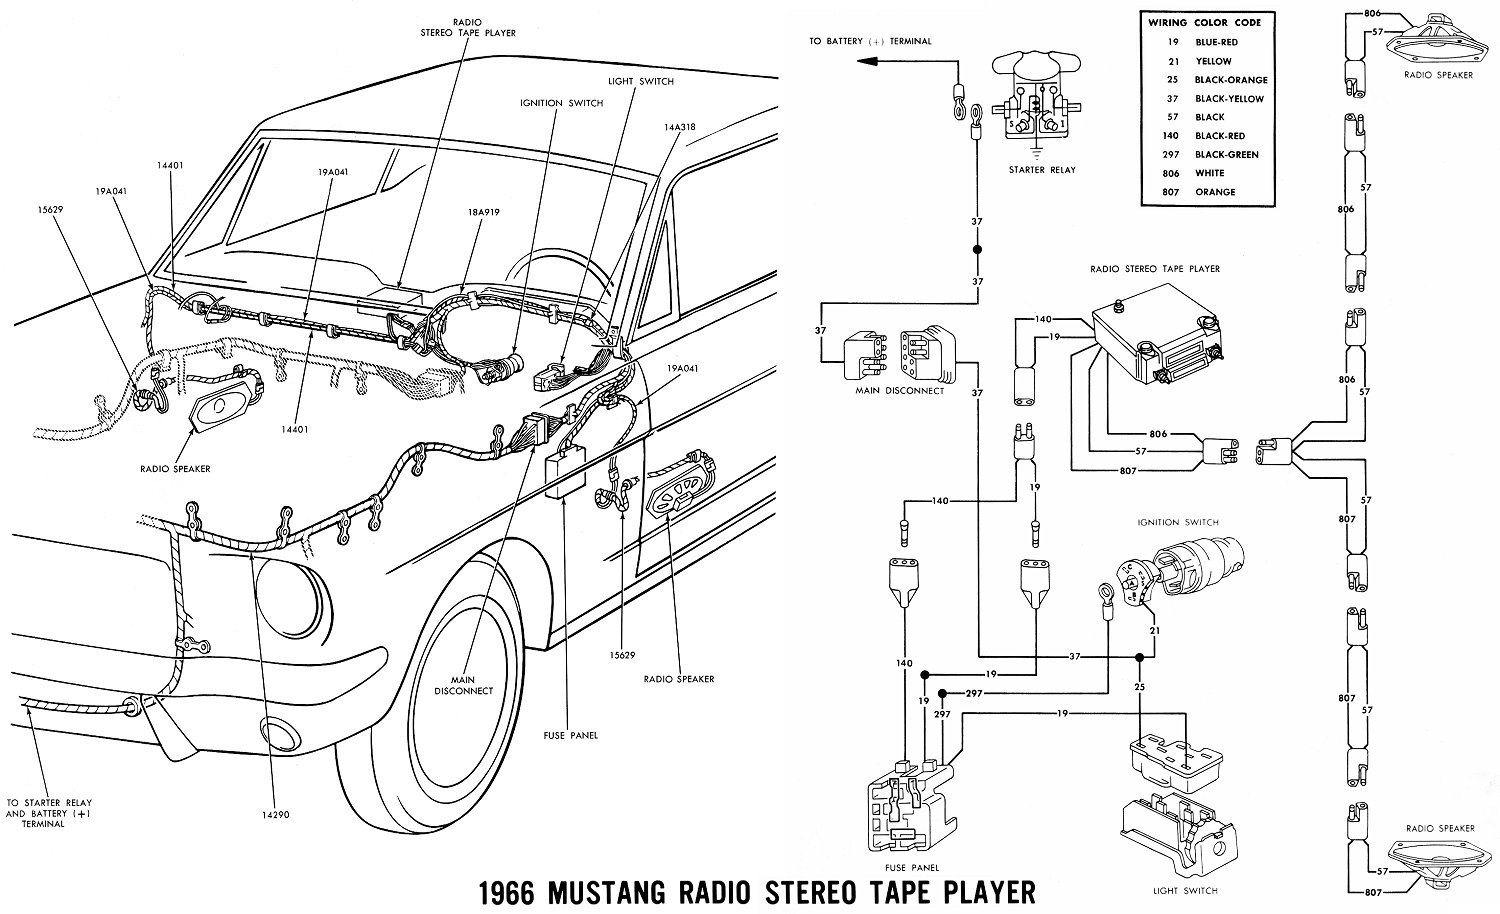 1966 Mustang Wiring Diagrams Average Joe Restoration Diy Get Free Image About Diagram Sm66ste